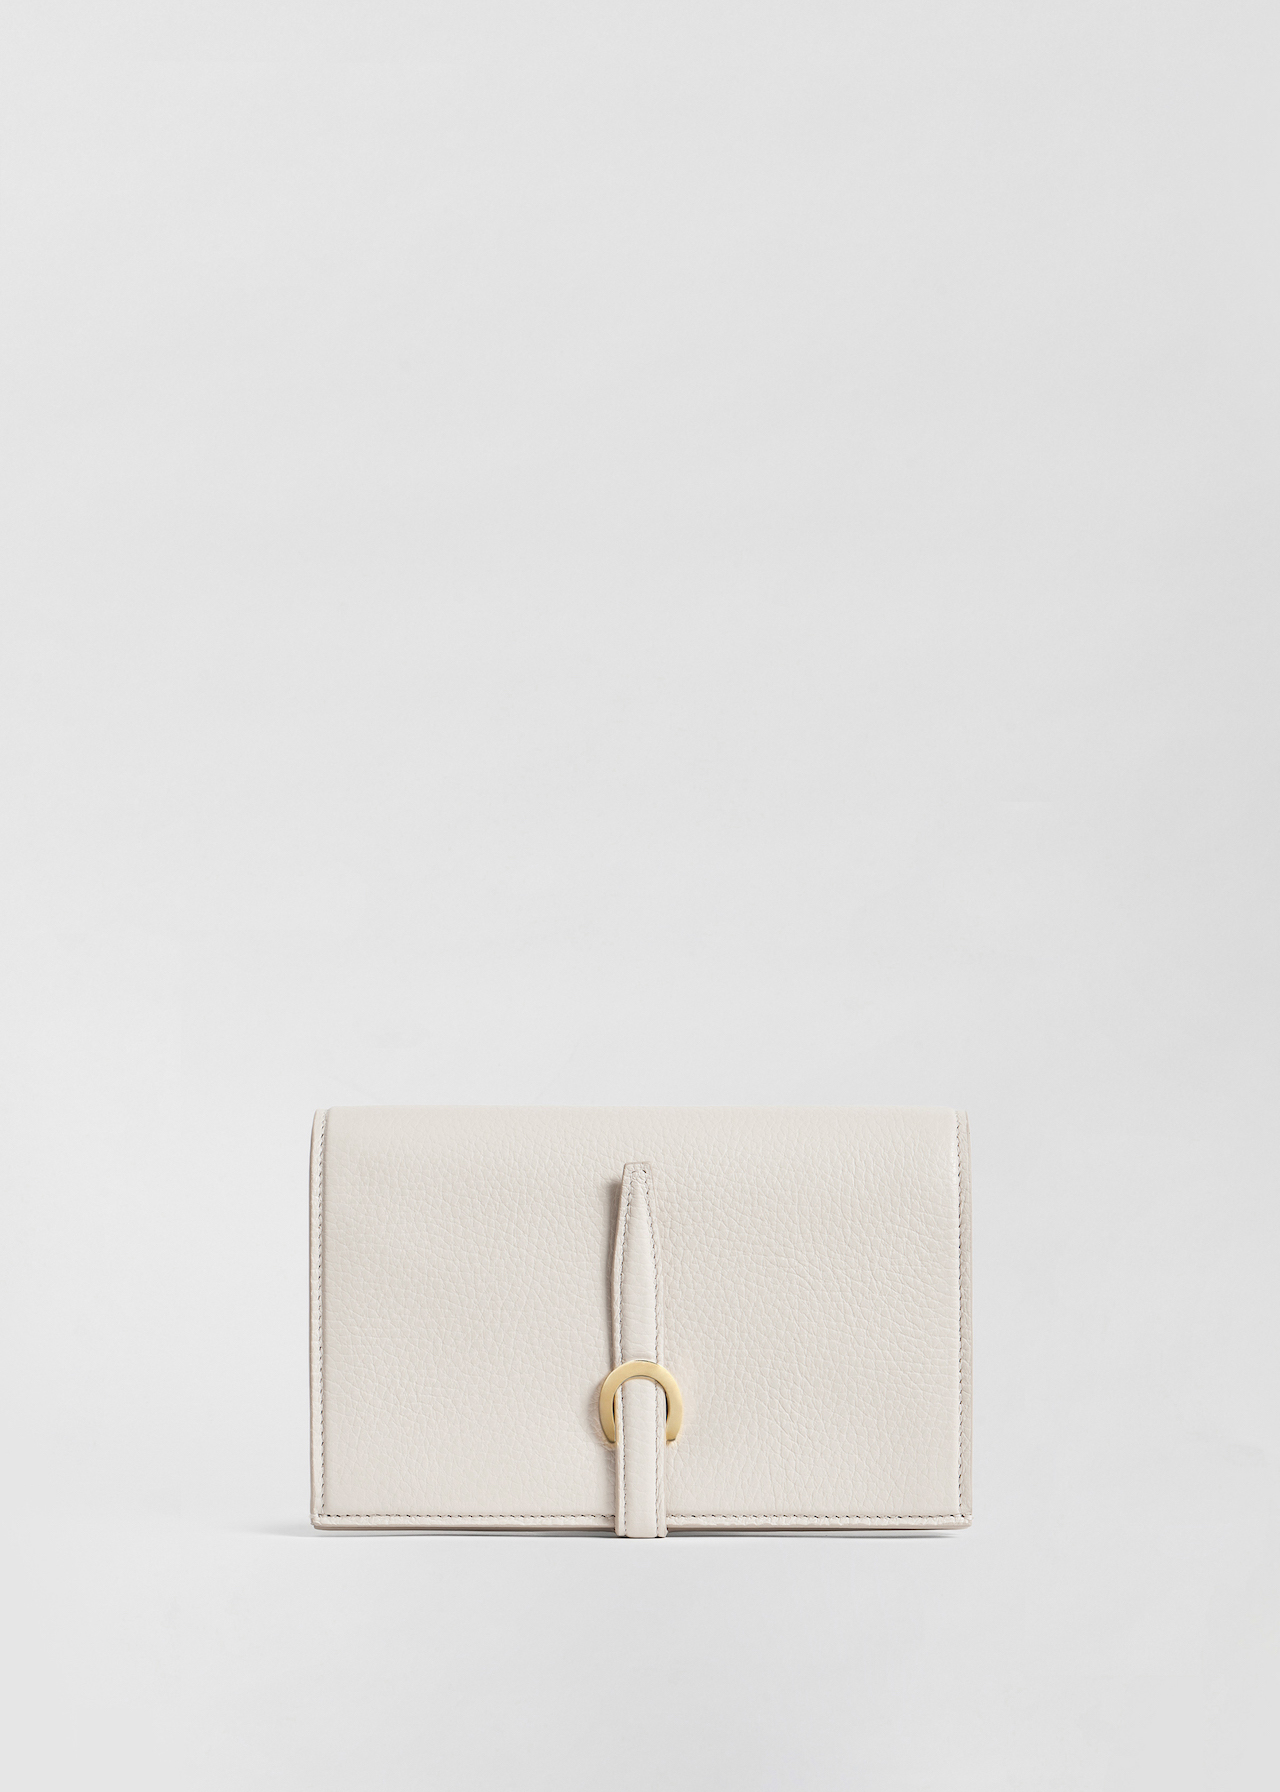 Strap Wallet in Pebbled Leather - Ivory - Co Collections